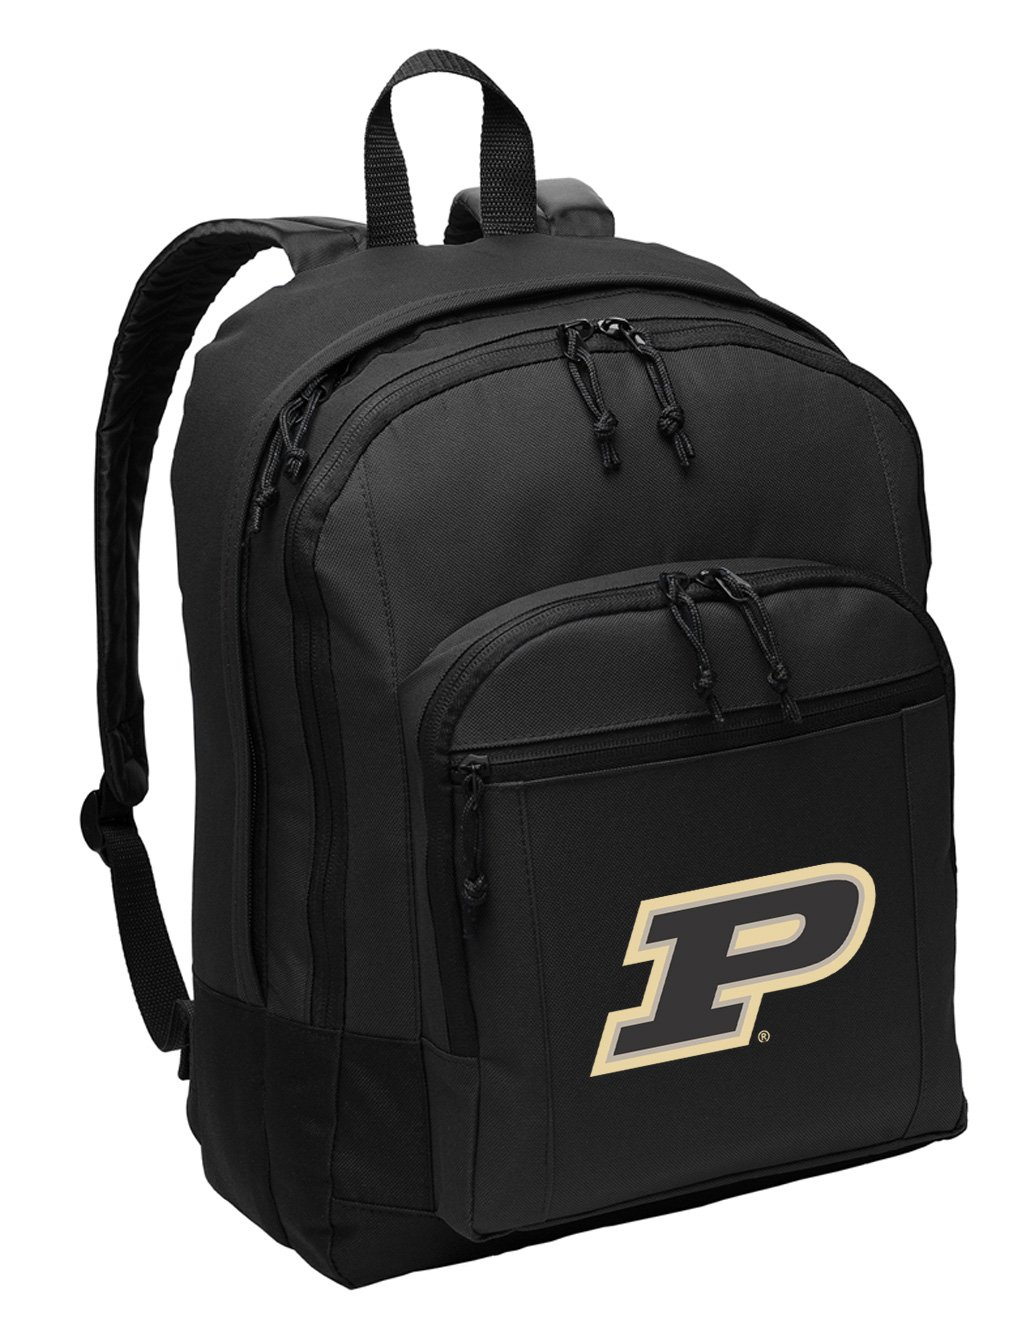 Broad Bay Purdue University Backpack CLASSIC STYLE Purdue Backpack Laptop Sleeve by Broad Bay (Image #1)